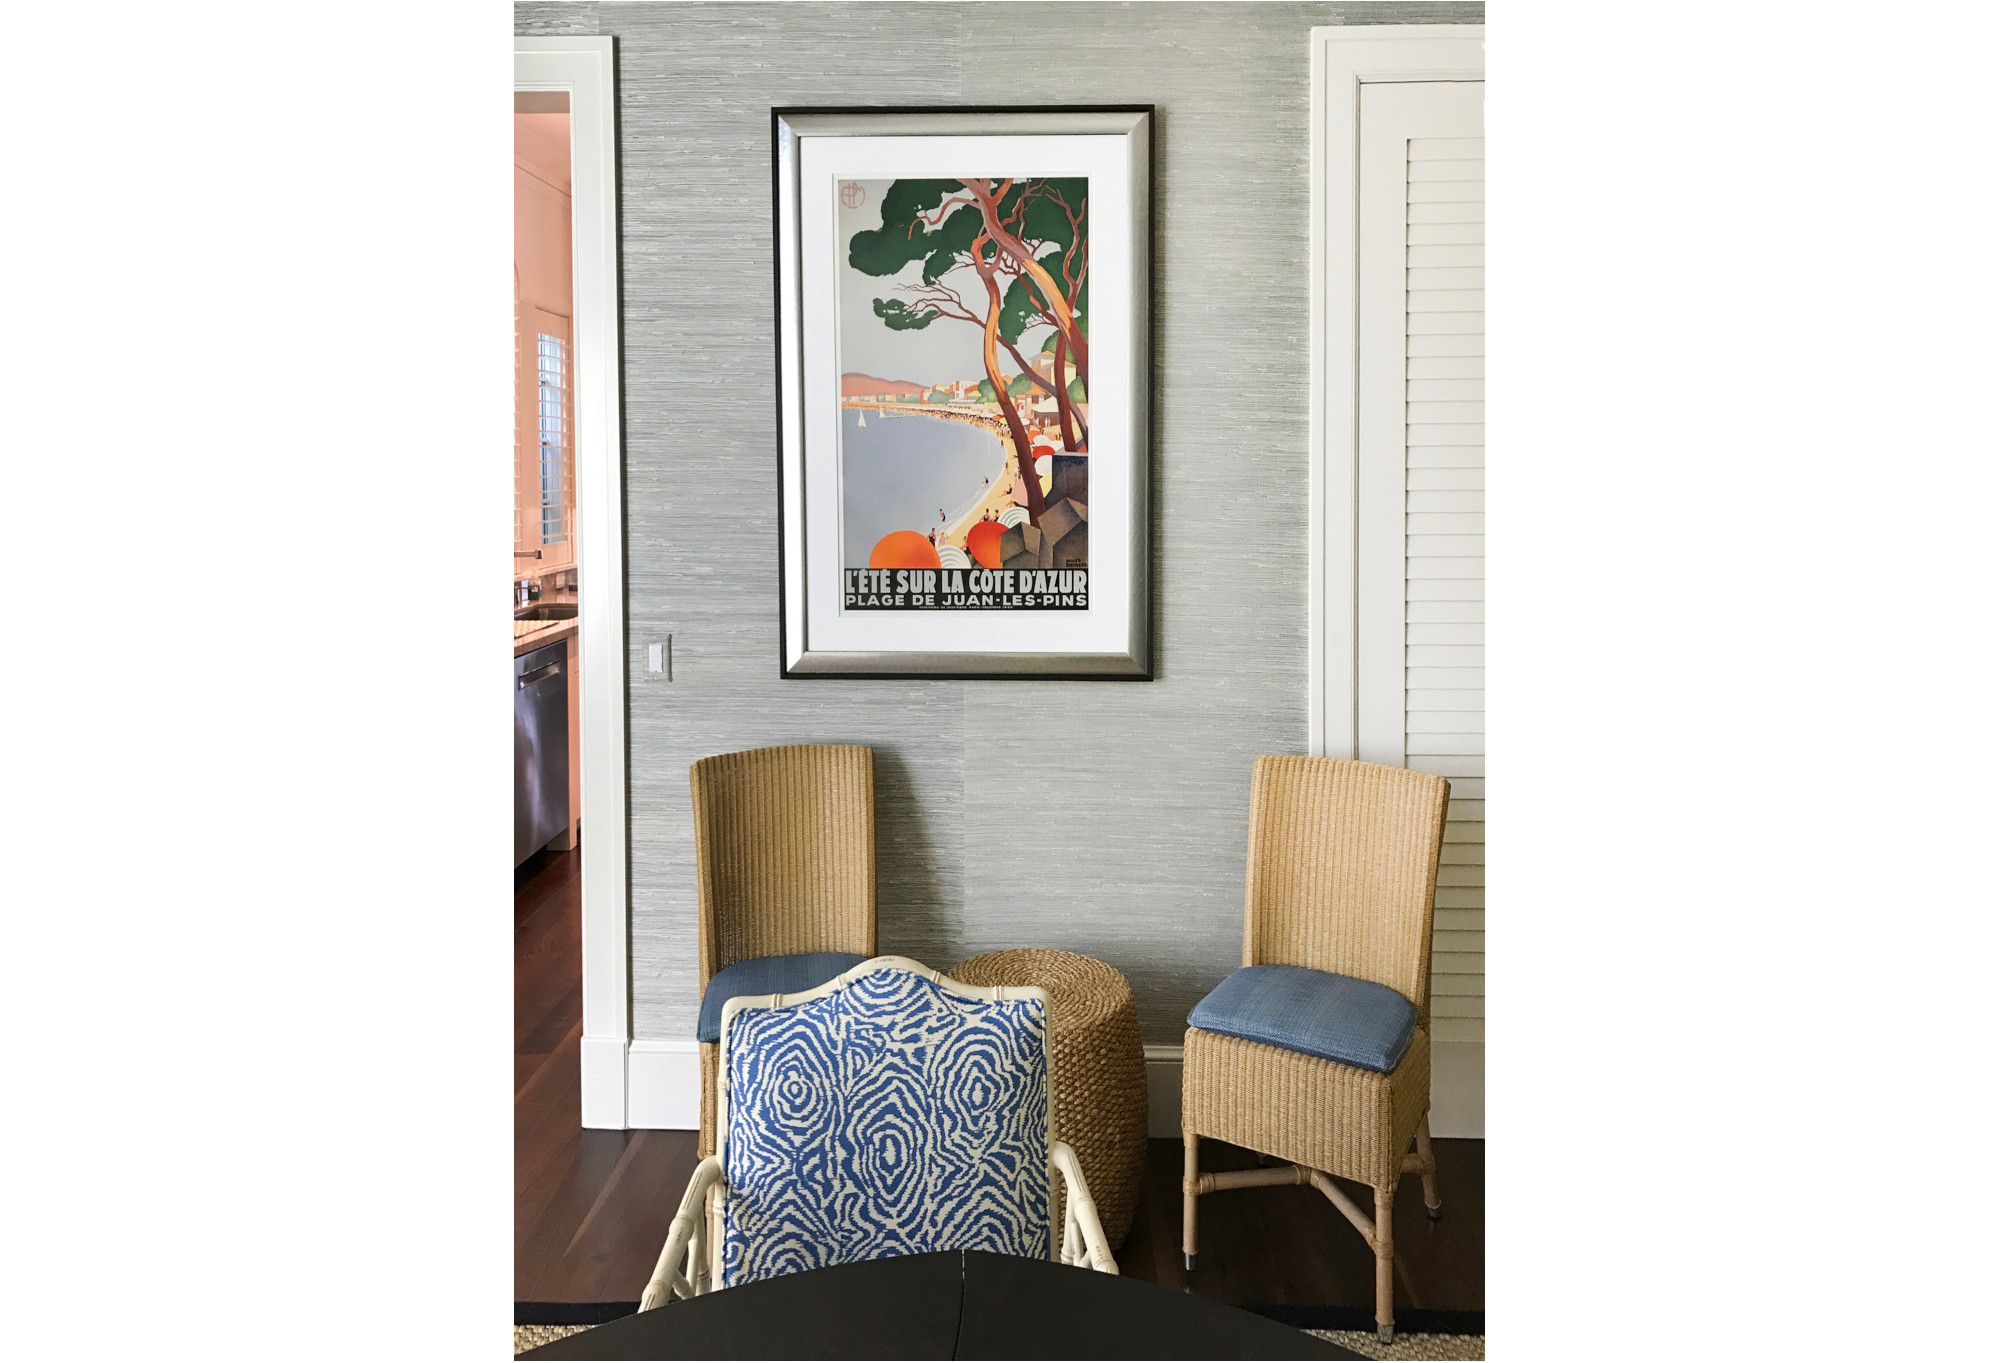 framed beach scene poster on wall with wicker chairs; blue, orange, tan, black, gray